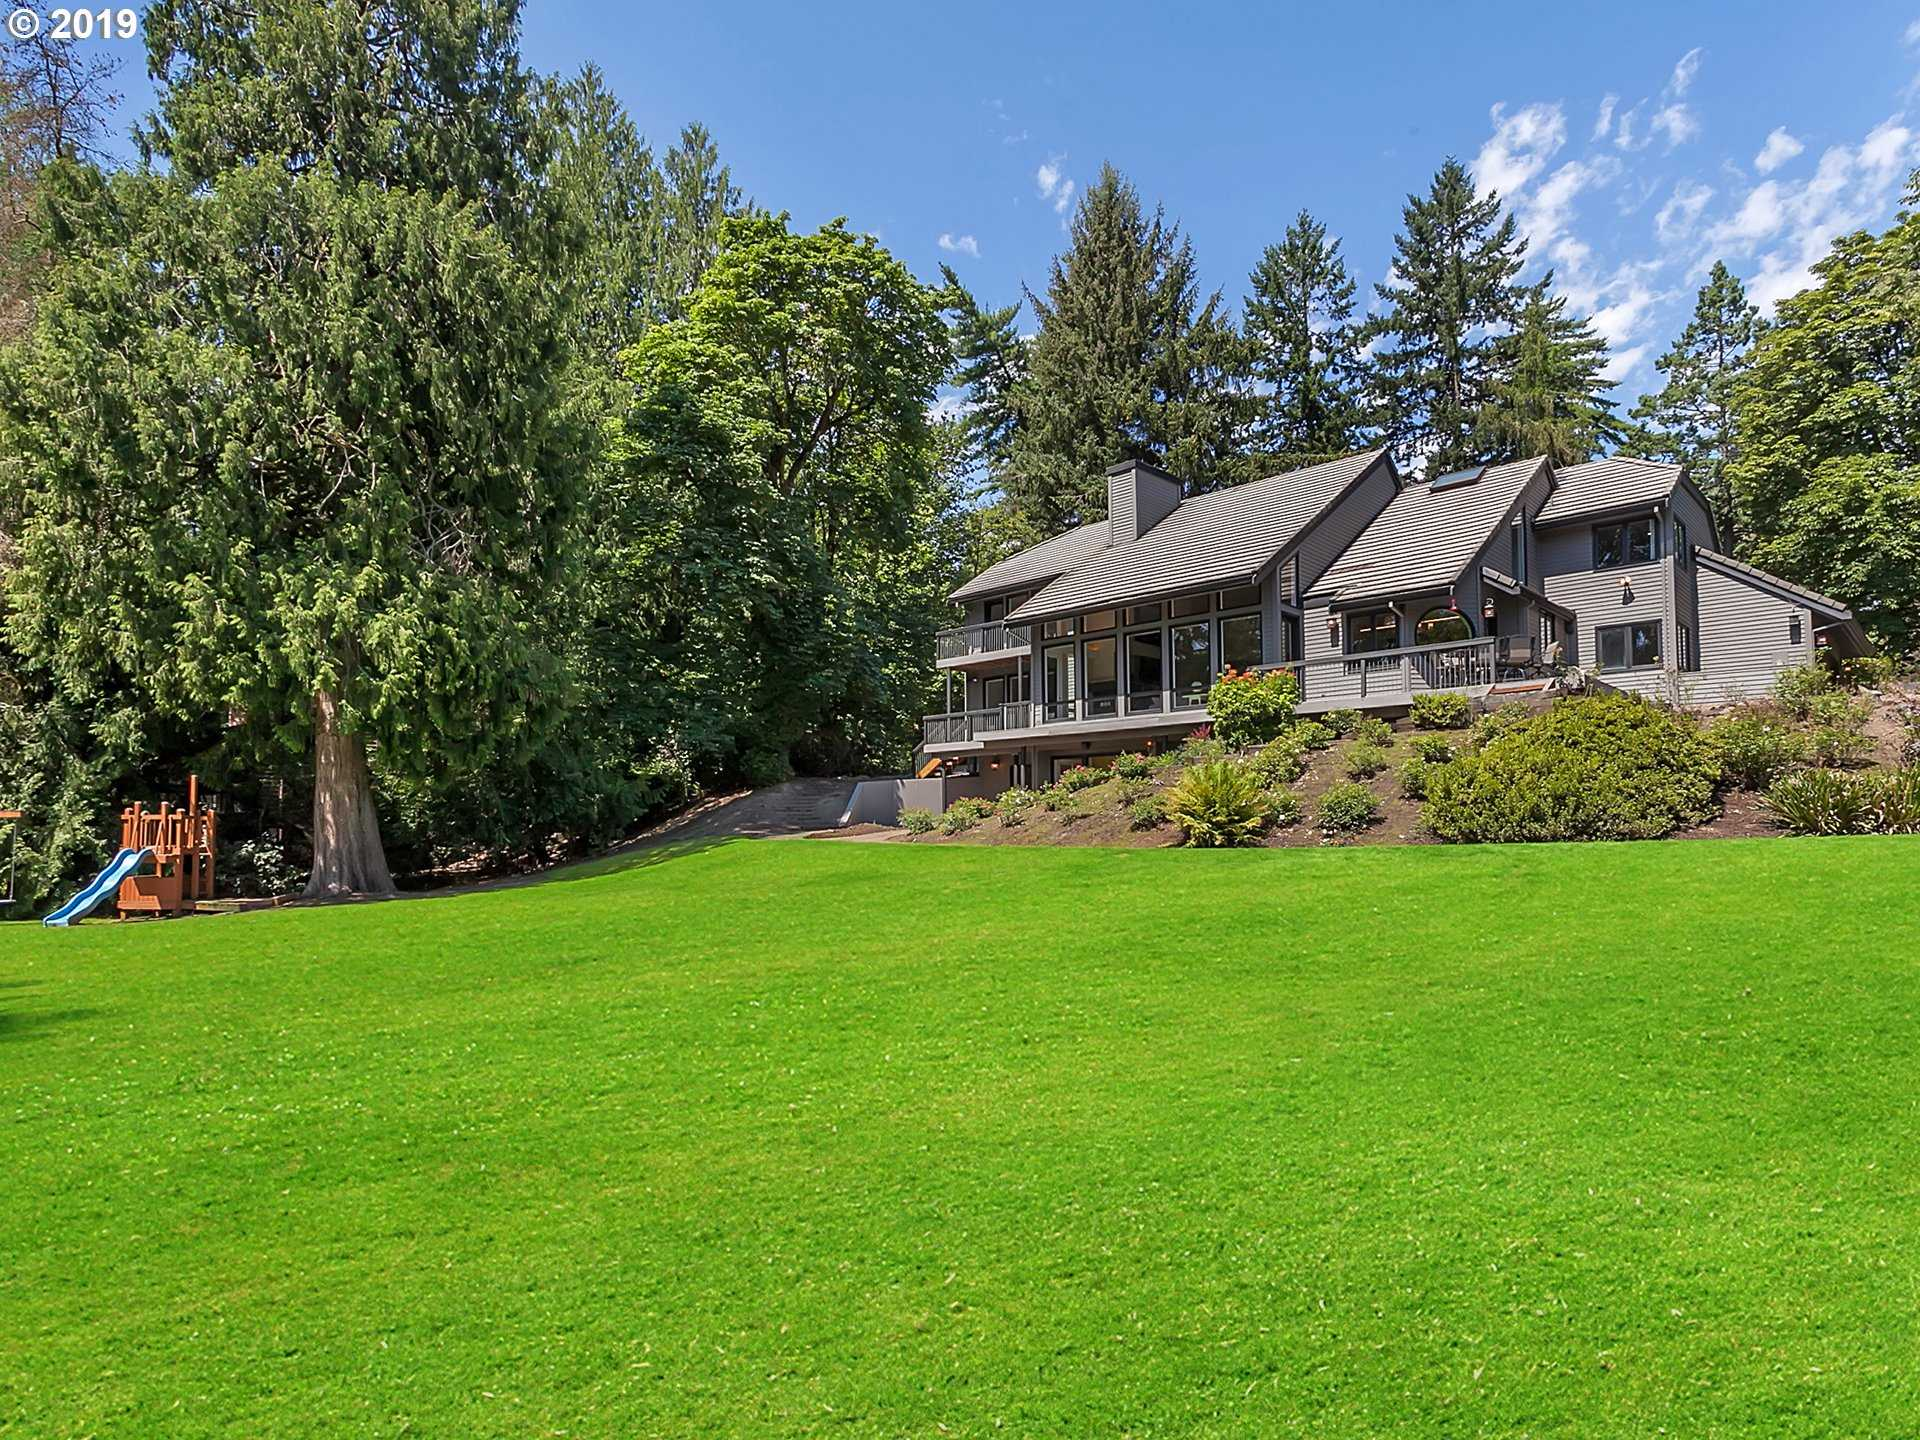 $1,750,000 - 5Br/5Ba -  for Sale in Wilsonville